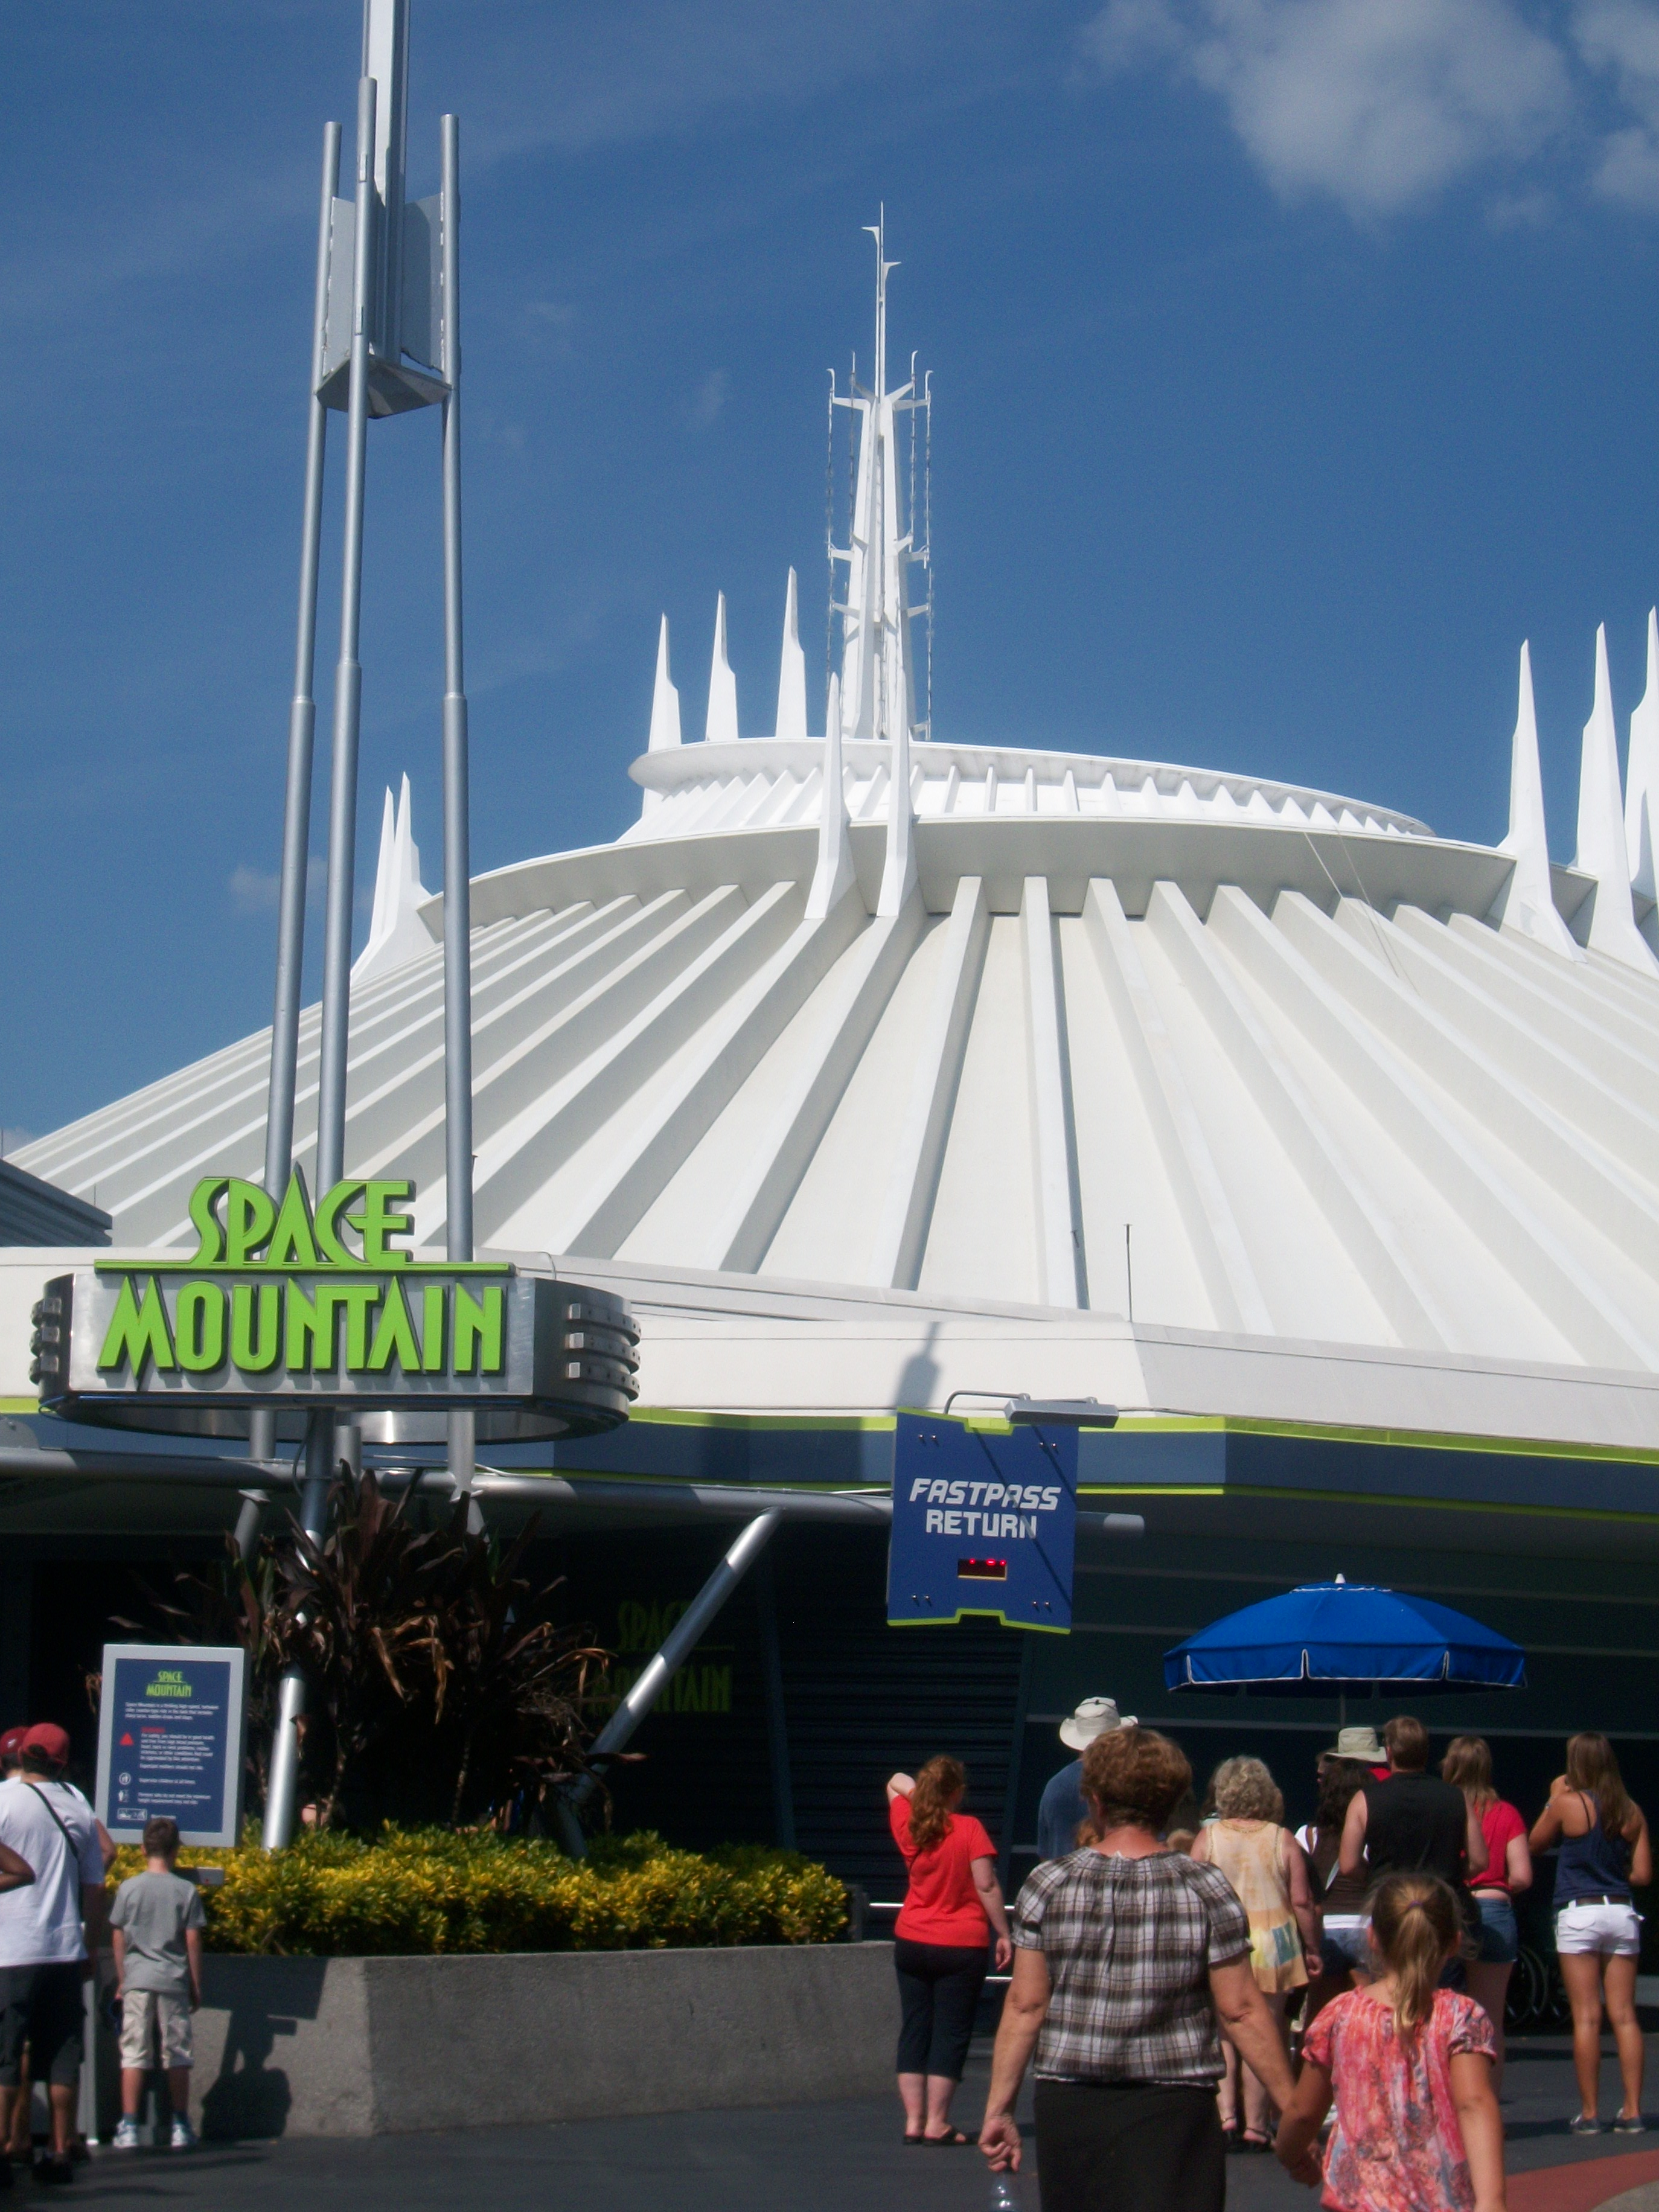 memoir on disney world Memoir disney world  have you ever been to disney worldi have when i was 6 years old it was my first time therewhen we went on the plane i was a little scared because i never been on.